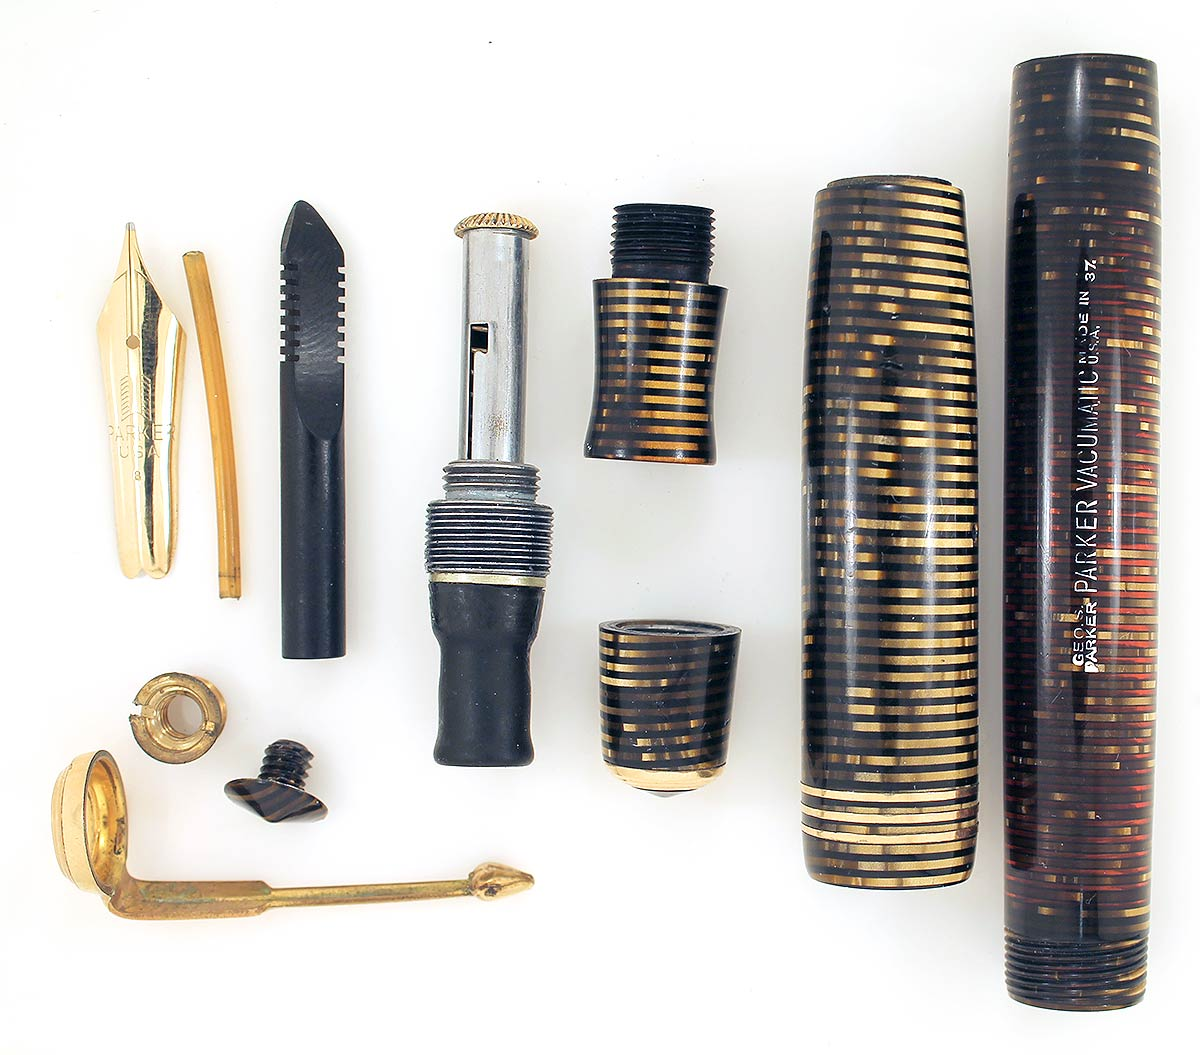 1937 PARKER GOLDEN PEARL DJ VACUMATIC FOUNTAIN PEN HIGH FLEX F-BBB+ NIB RESTORED OFFERED BY ANTIQUE DIGGER